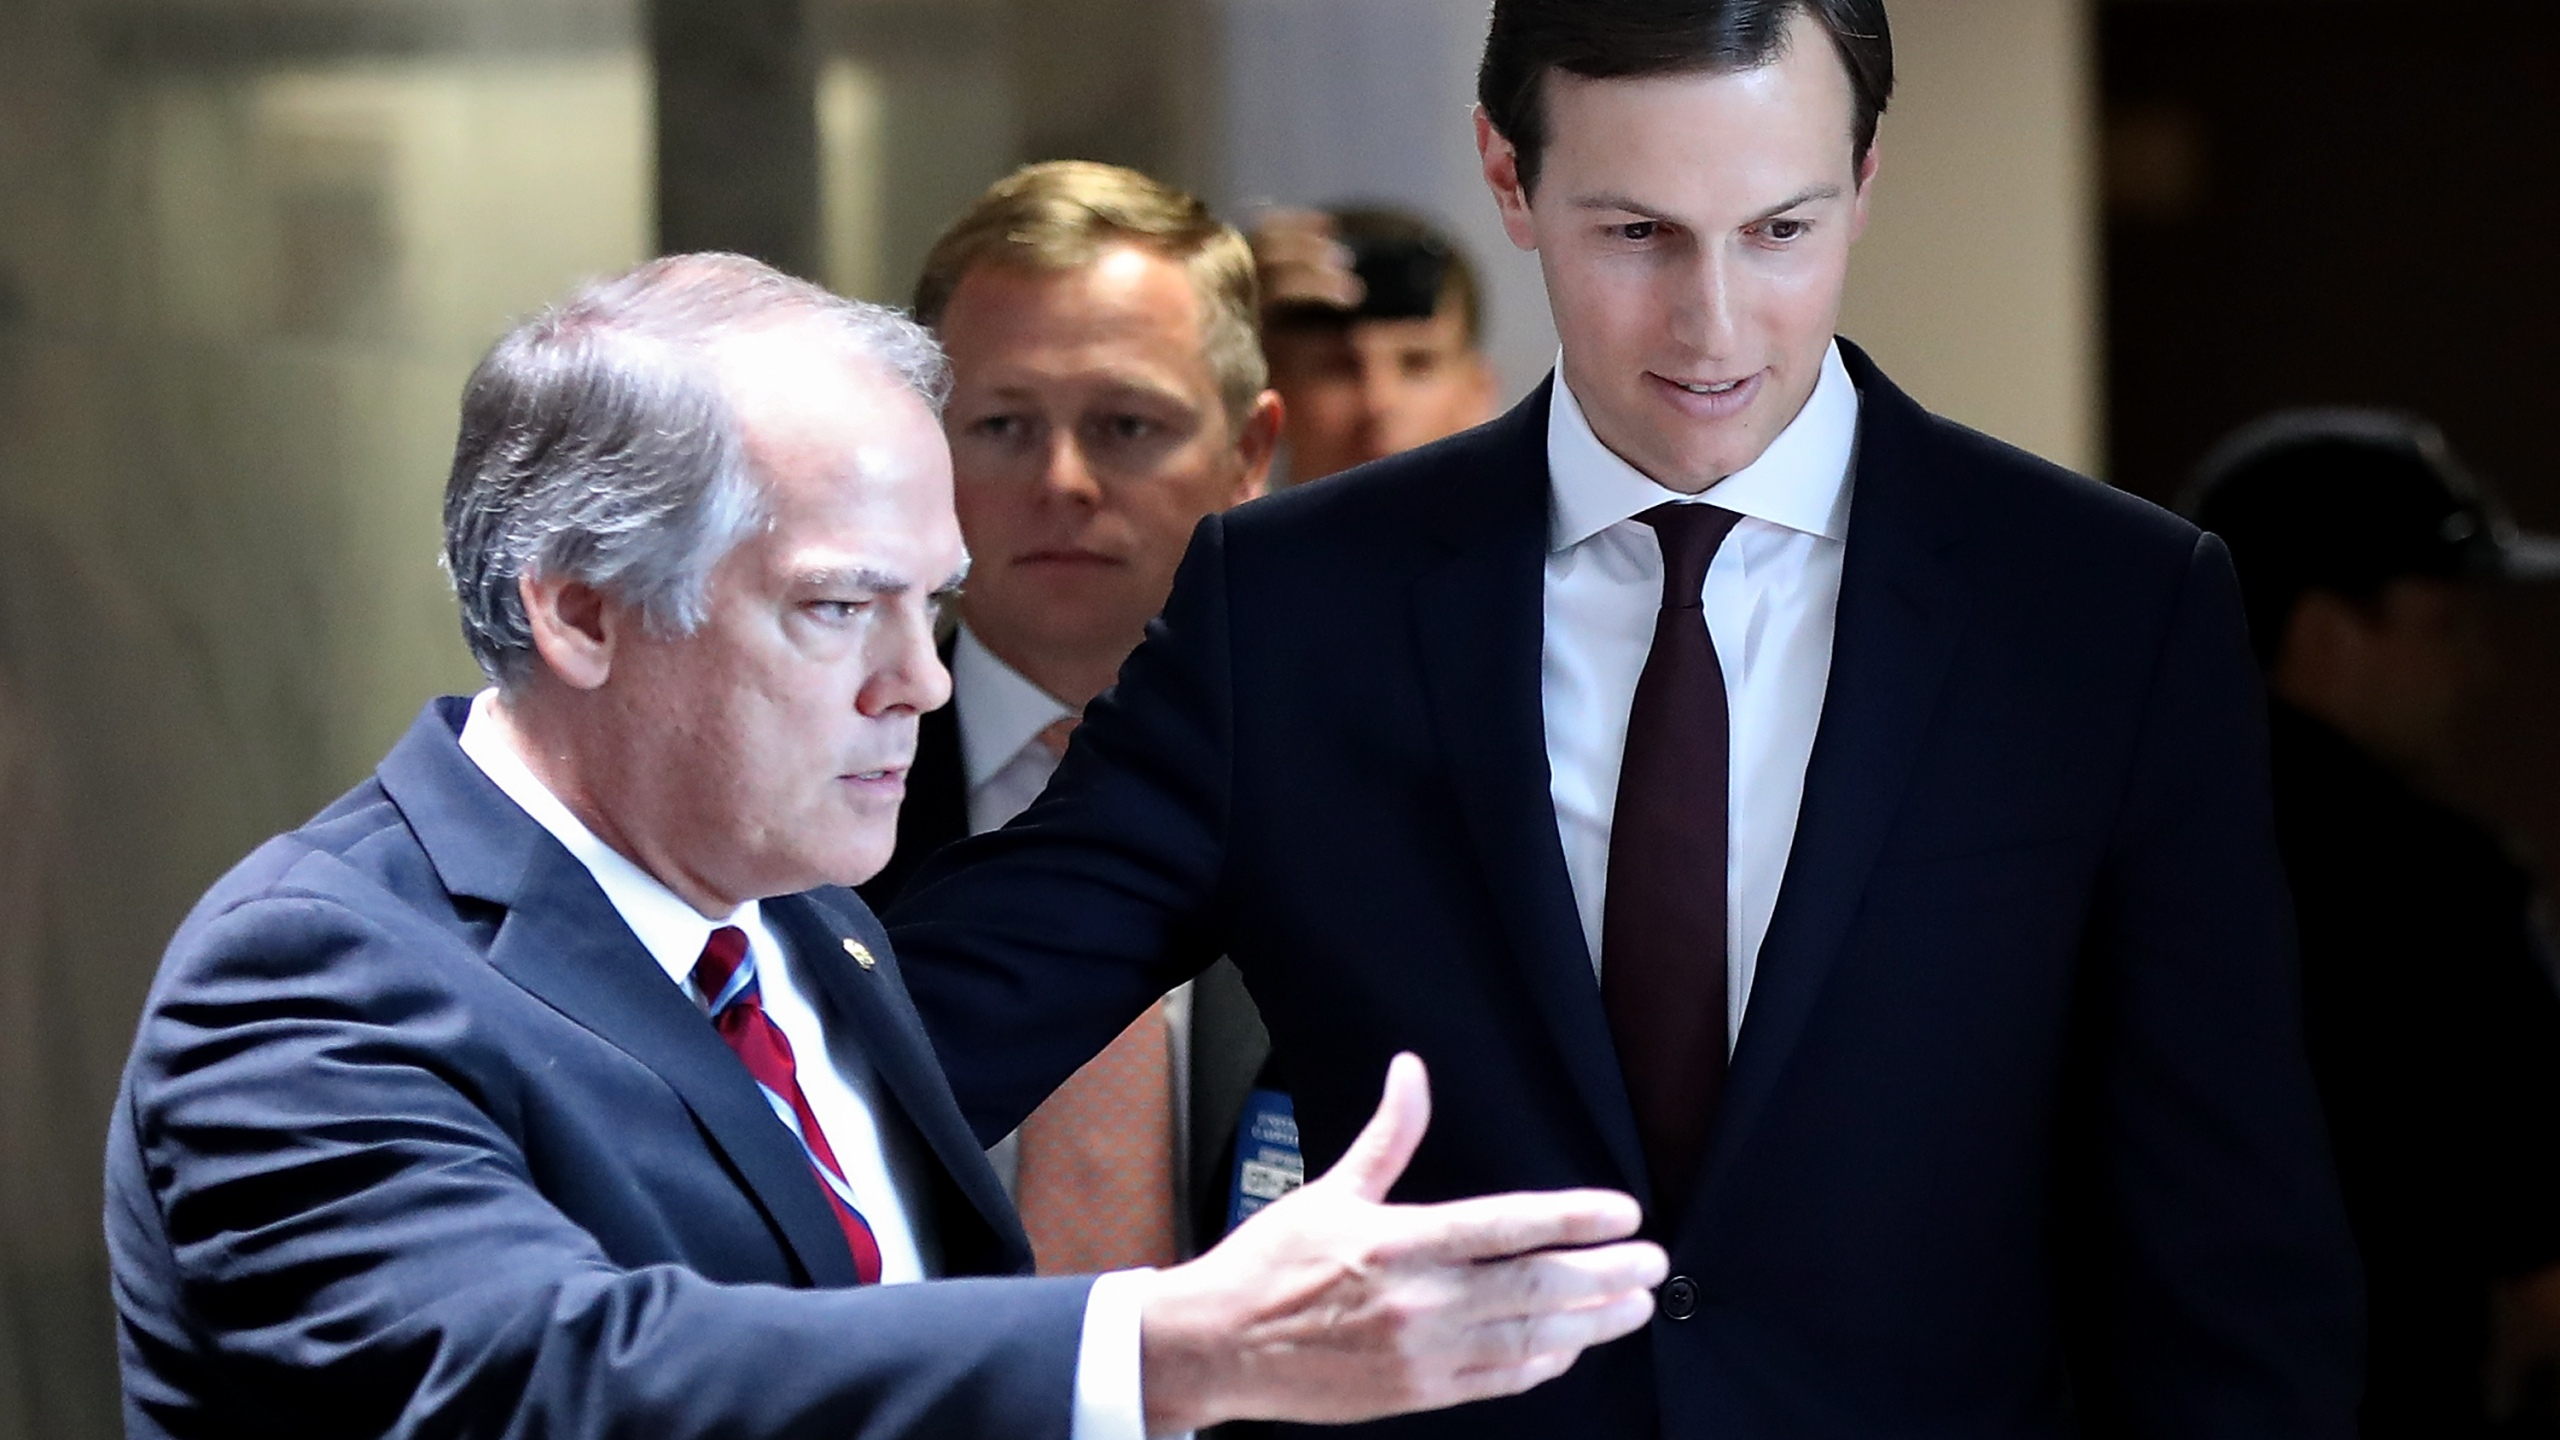 James Wolfe, left, is seen with Jared Kushner after a Senate Select Committee on Intelligence meeting on July 24, 2017 in Washington, D.C. (Credit: Win McNamee/Getty Images)